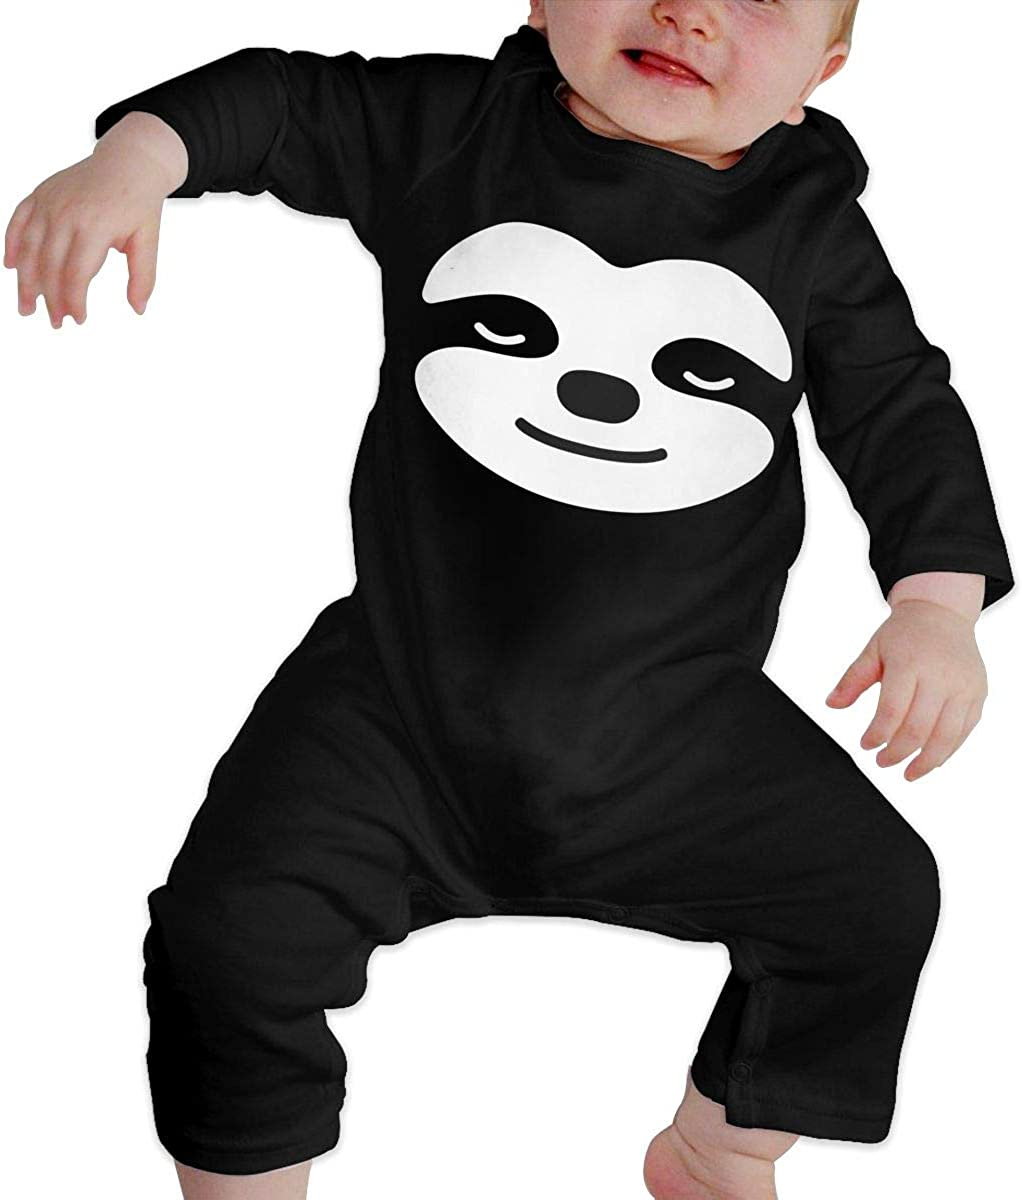 Sleepy Sloth Organic One-Piece Bodysuits Coverall Outfits BKNGDG8Q Toddler Baby Boy Romper Jumpsuit